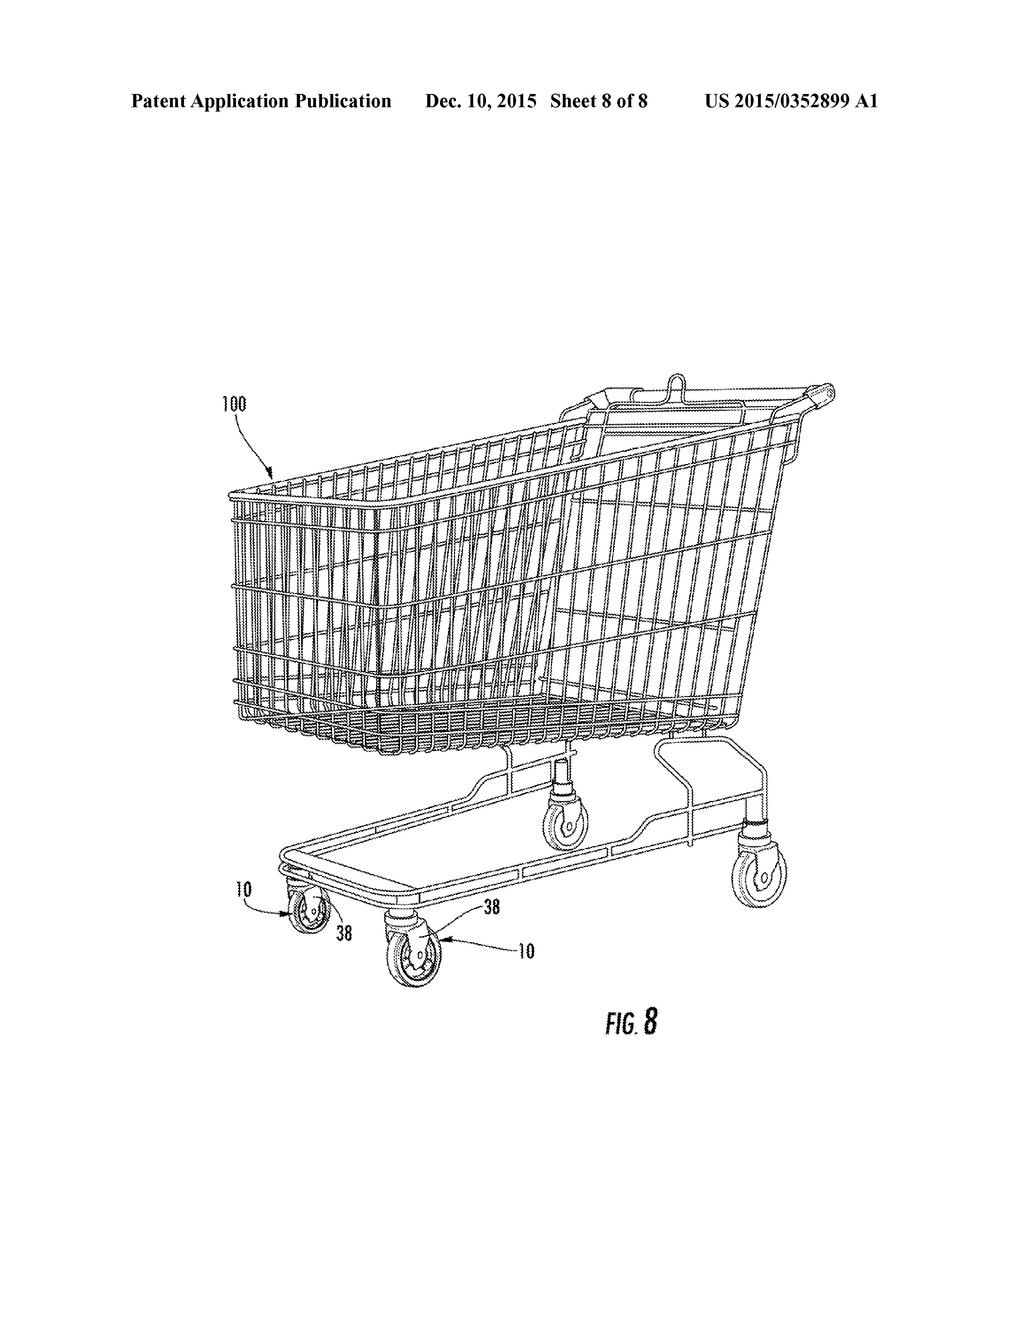 friction wheel for a shopping cart diagram schematic and image 09 rh patentsencyclopedia com shopping cart class diagram shopping cart sequence diagram